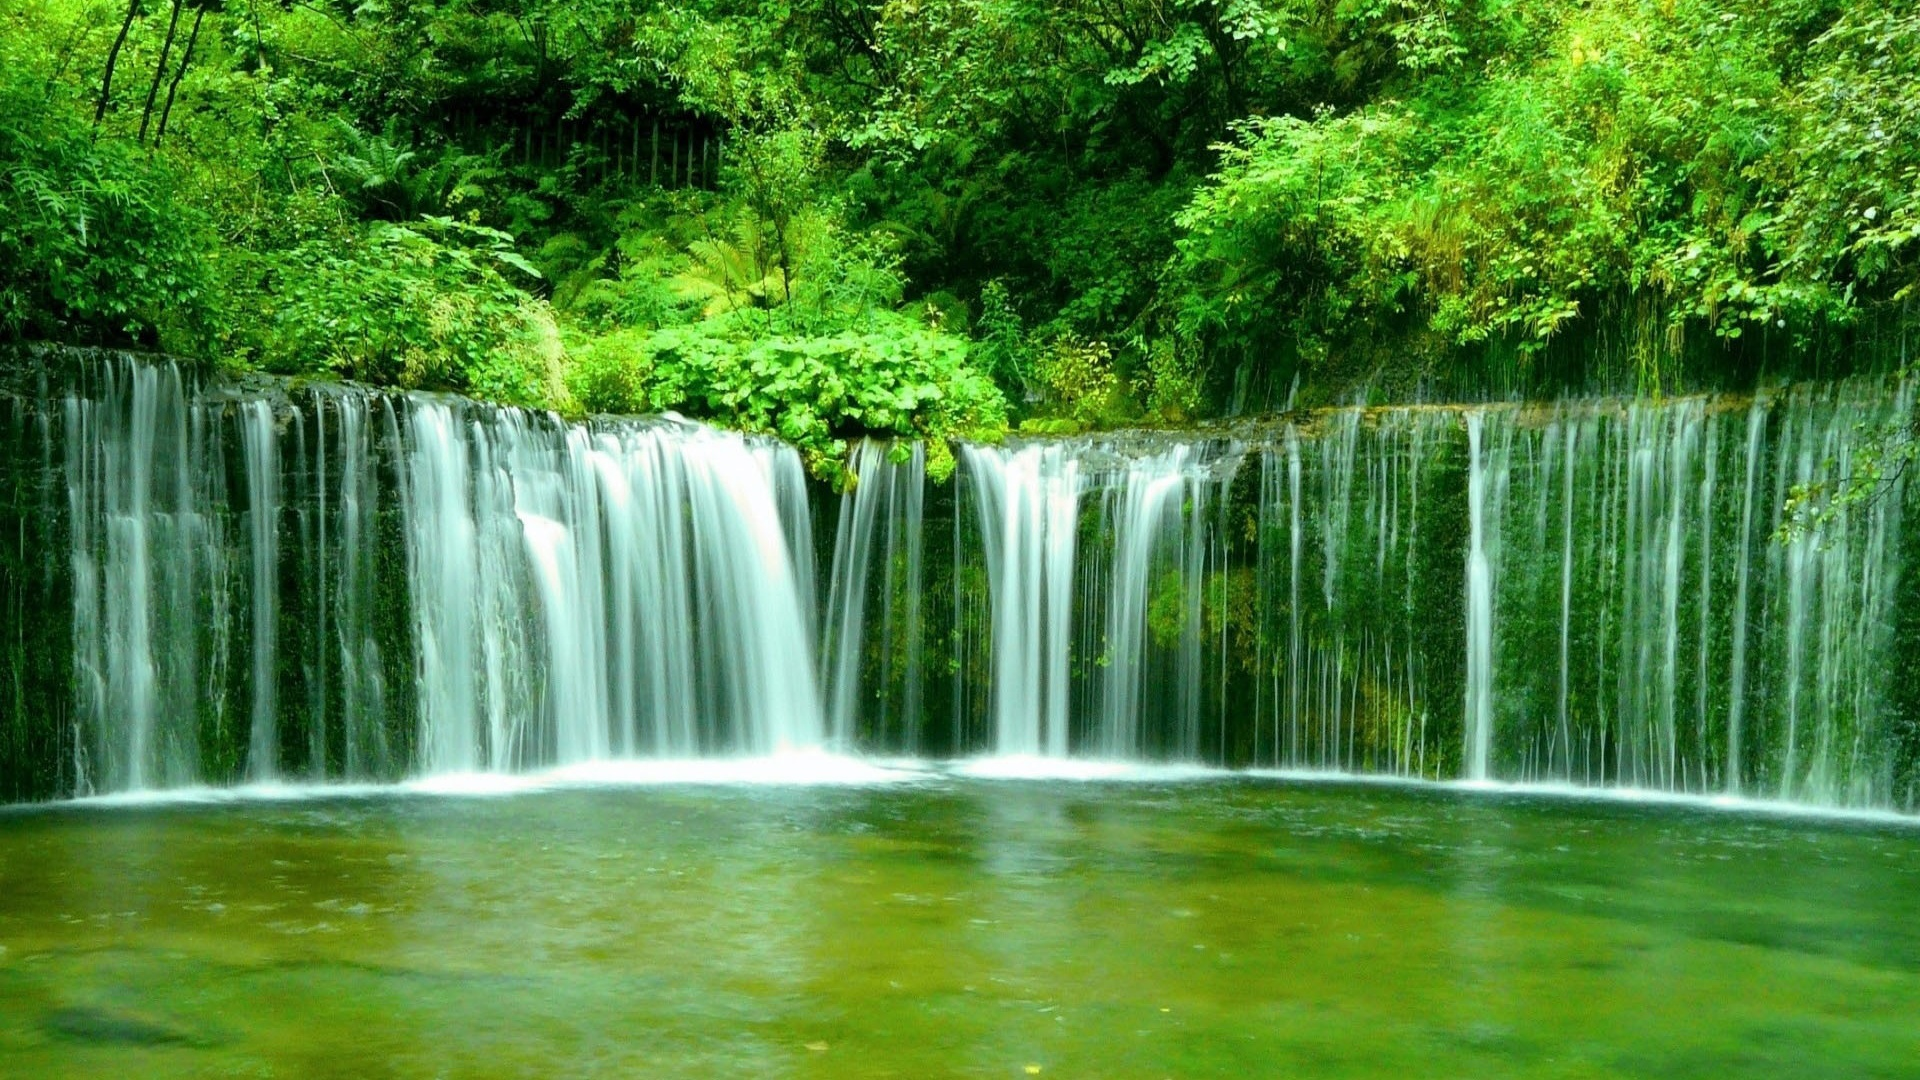 1920x1080 Hd Wallpapers Waterfall: 1920x1080 Green Waterfall Desktop PC And Mac Wallpaper